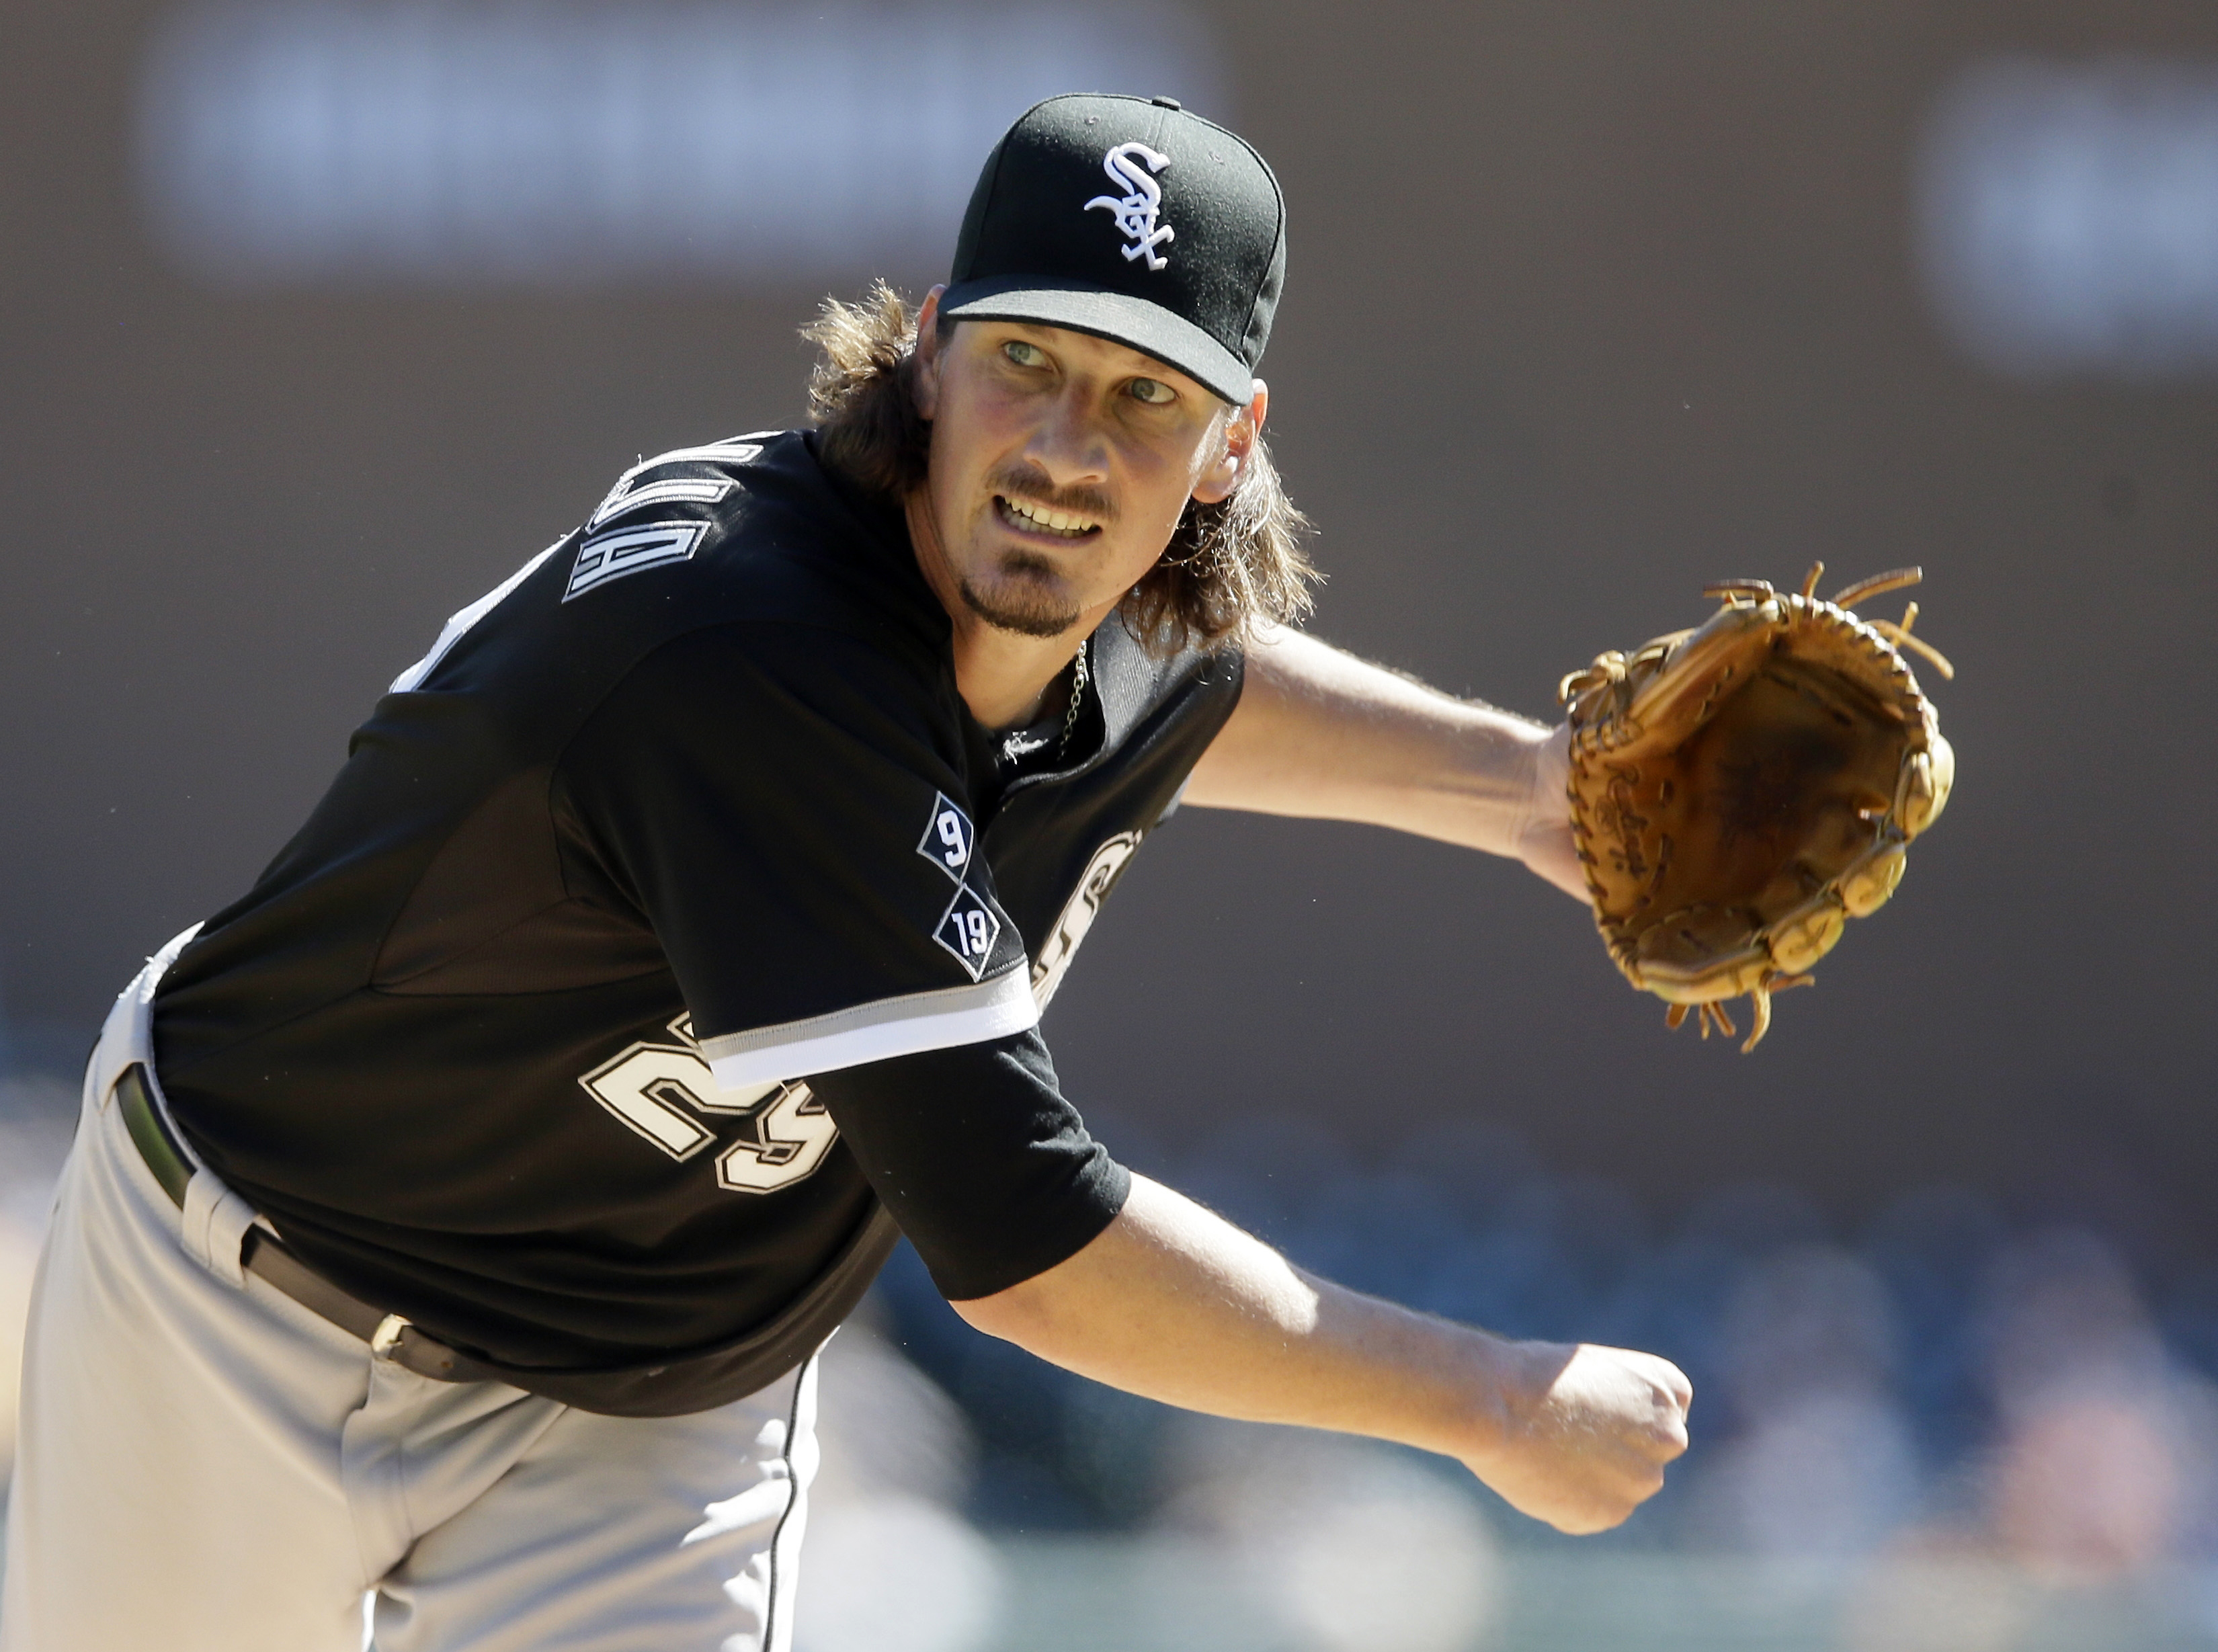 Chicago White Sox starting pitcher Jeff Samardzija throws during the first inning in Game 1 of a doubleheader baseball game against the Detroit Tigers, Monday, Sept. 21, 2015, in Detroit. (AP Photo/Carlos Osorio)